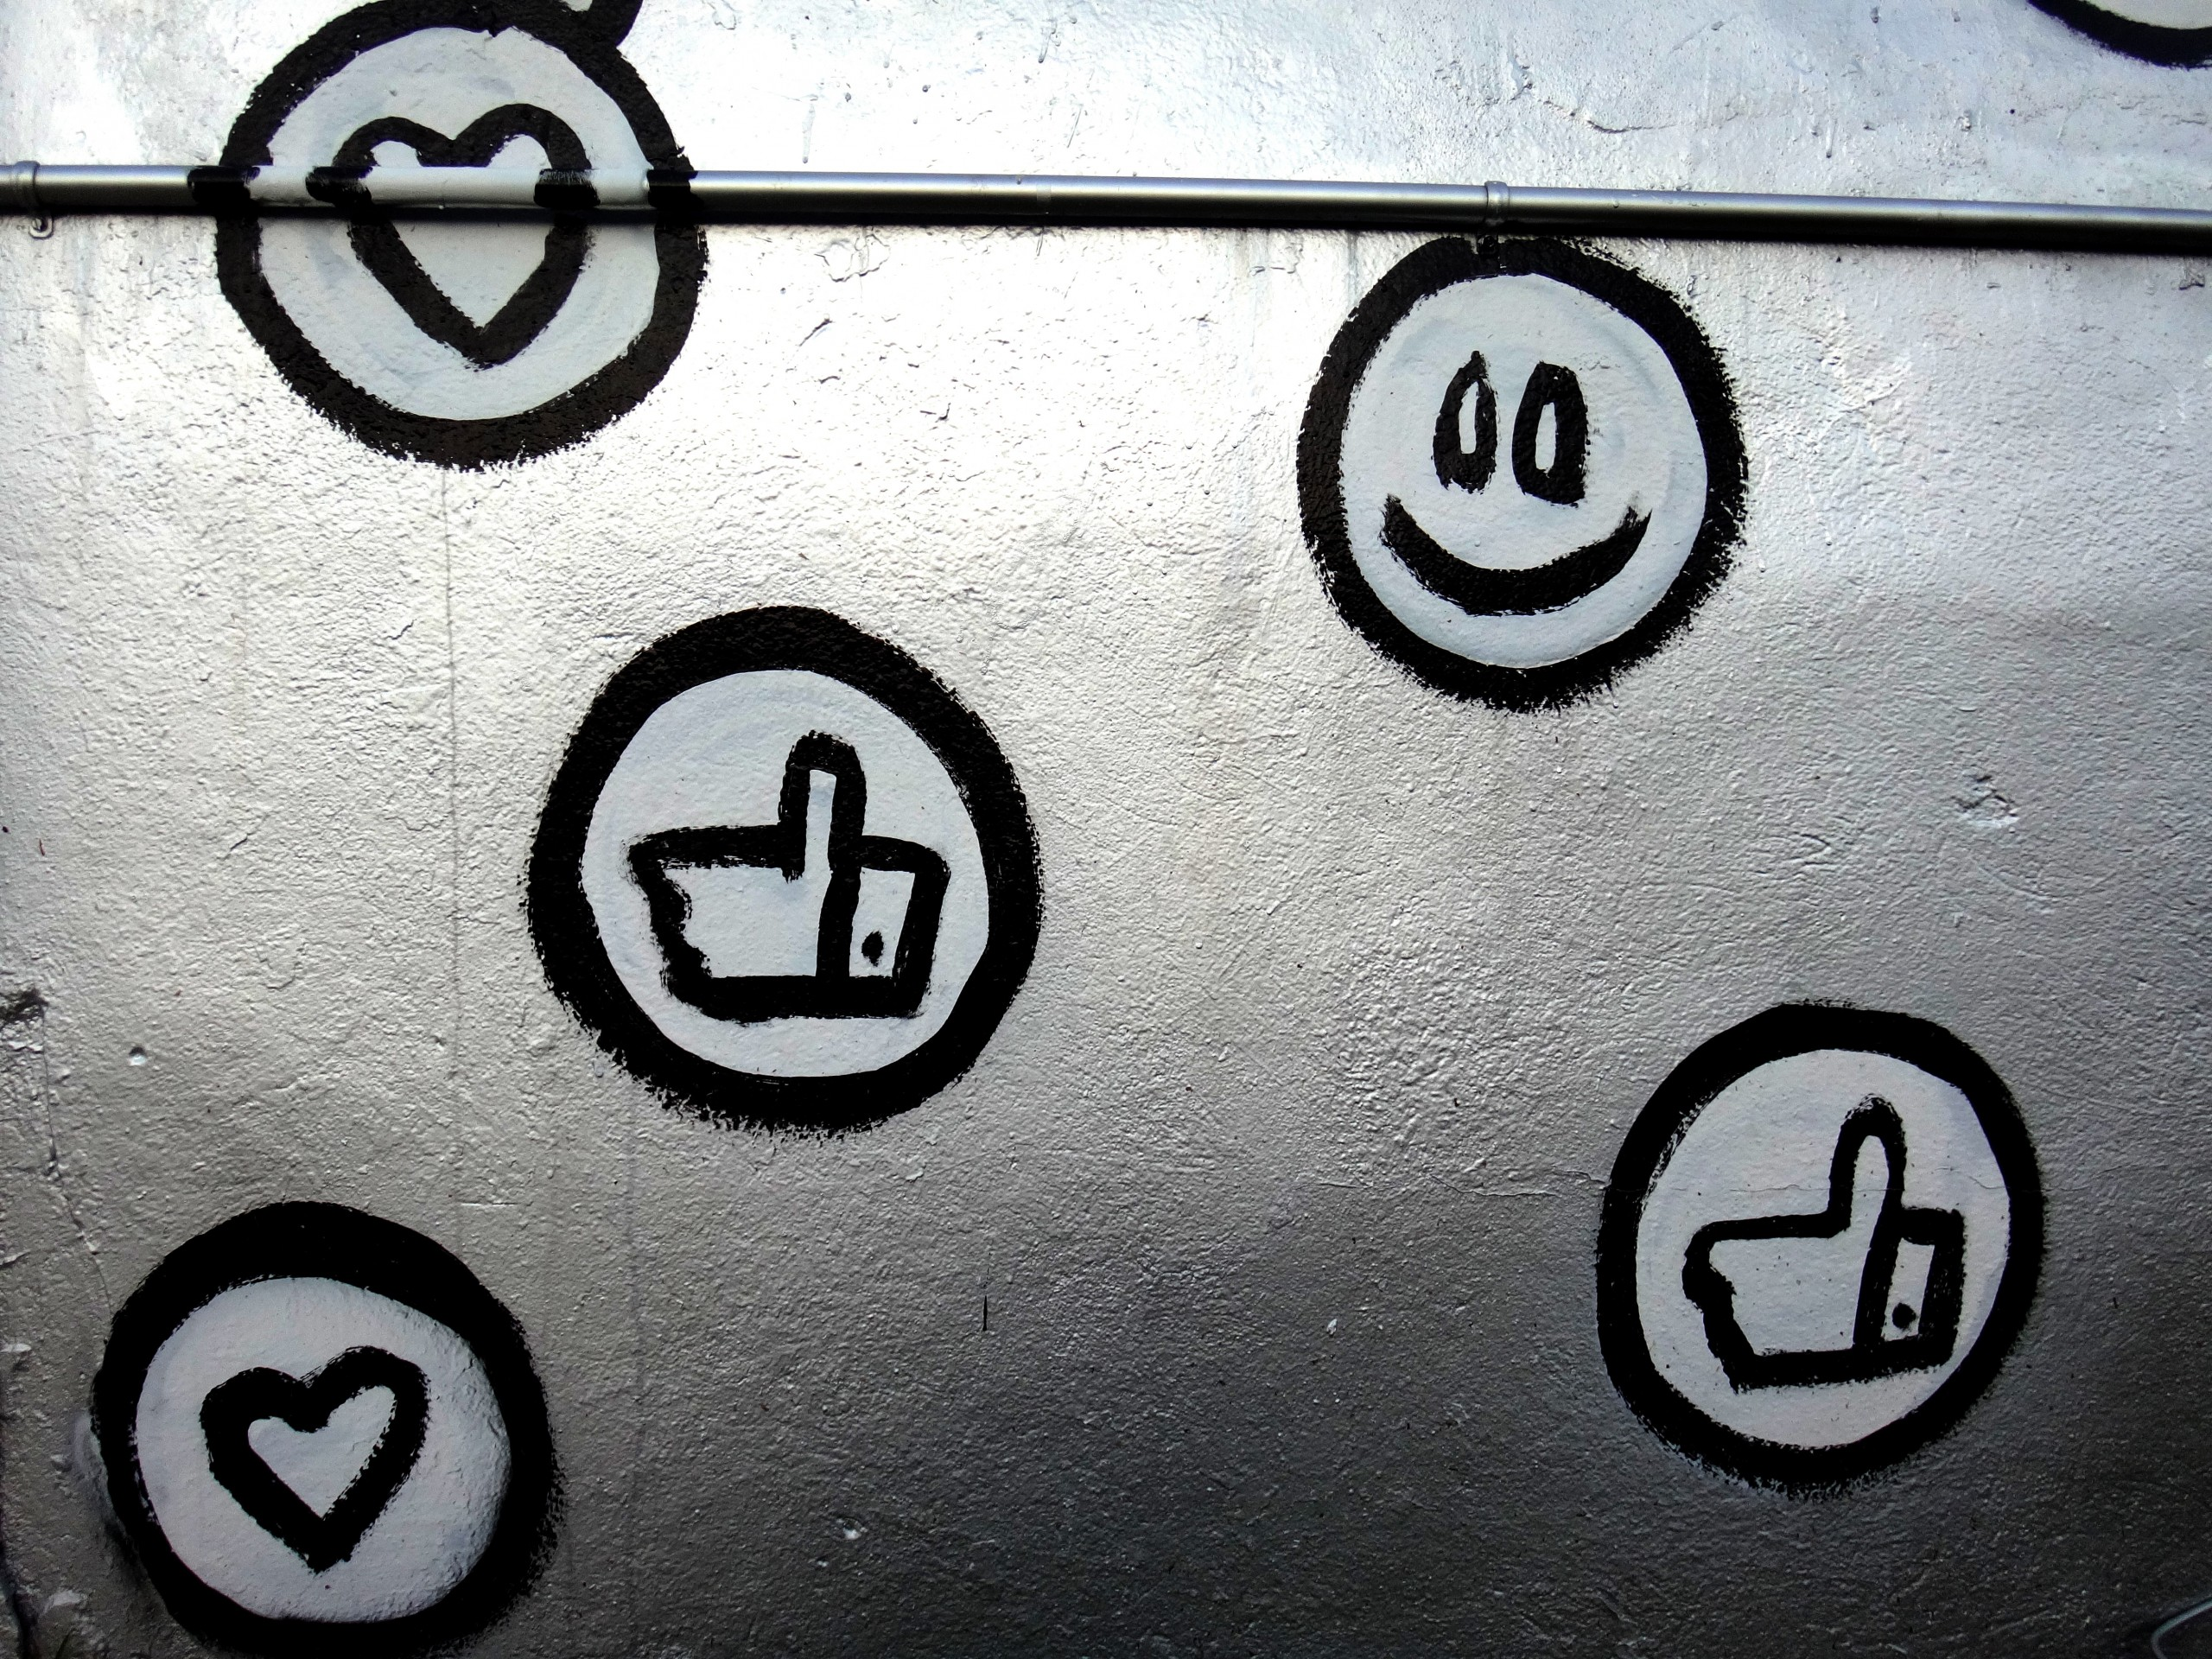 wall with different symbols drawn on it such as smiley faces and thumbs up and love hearts